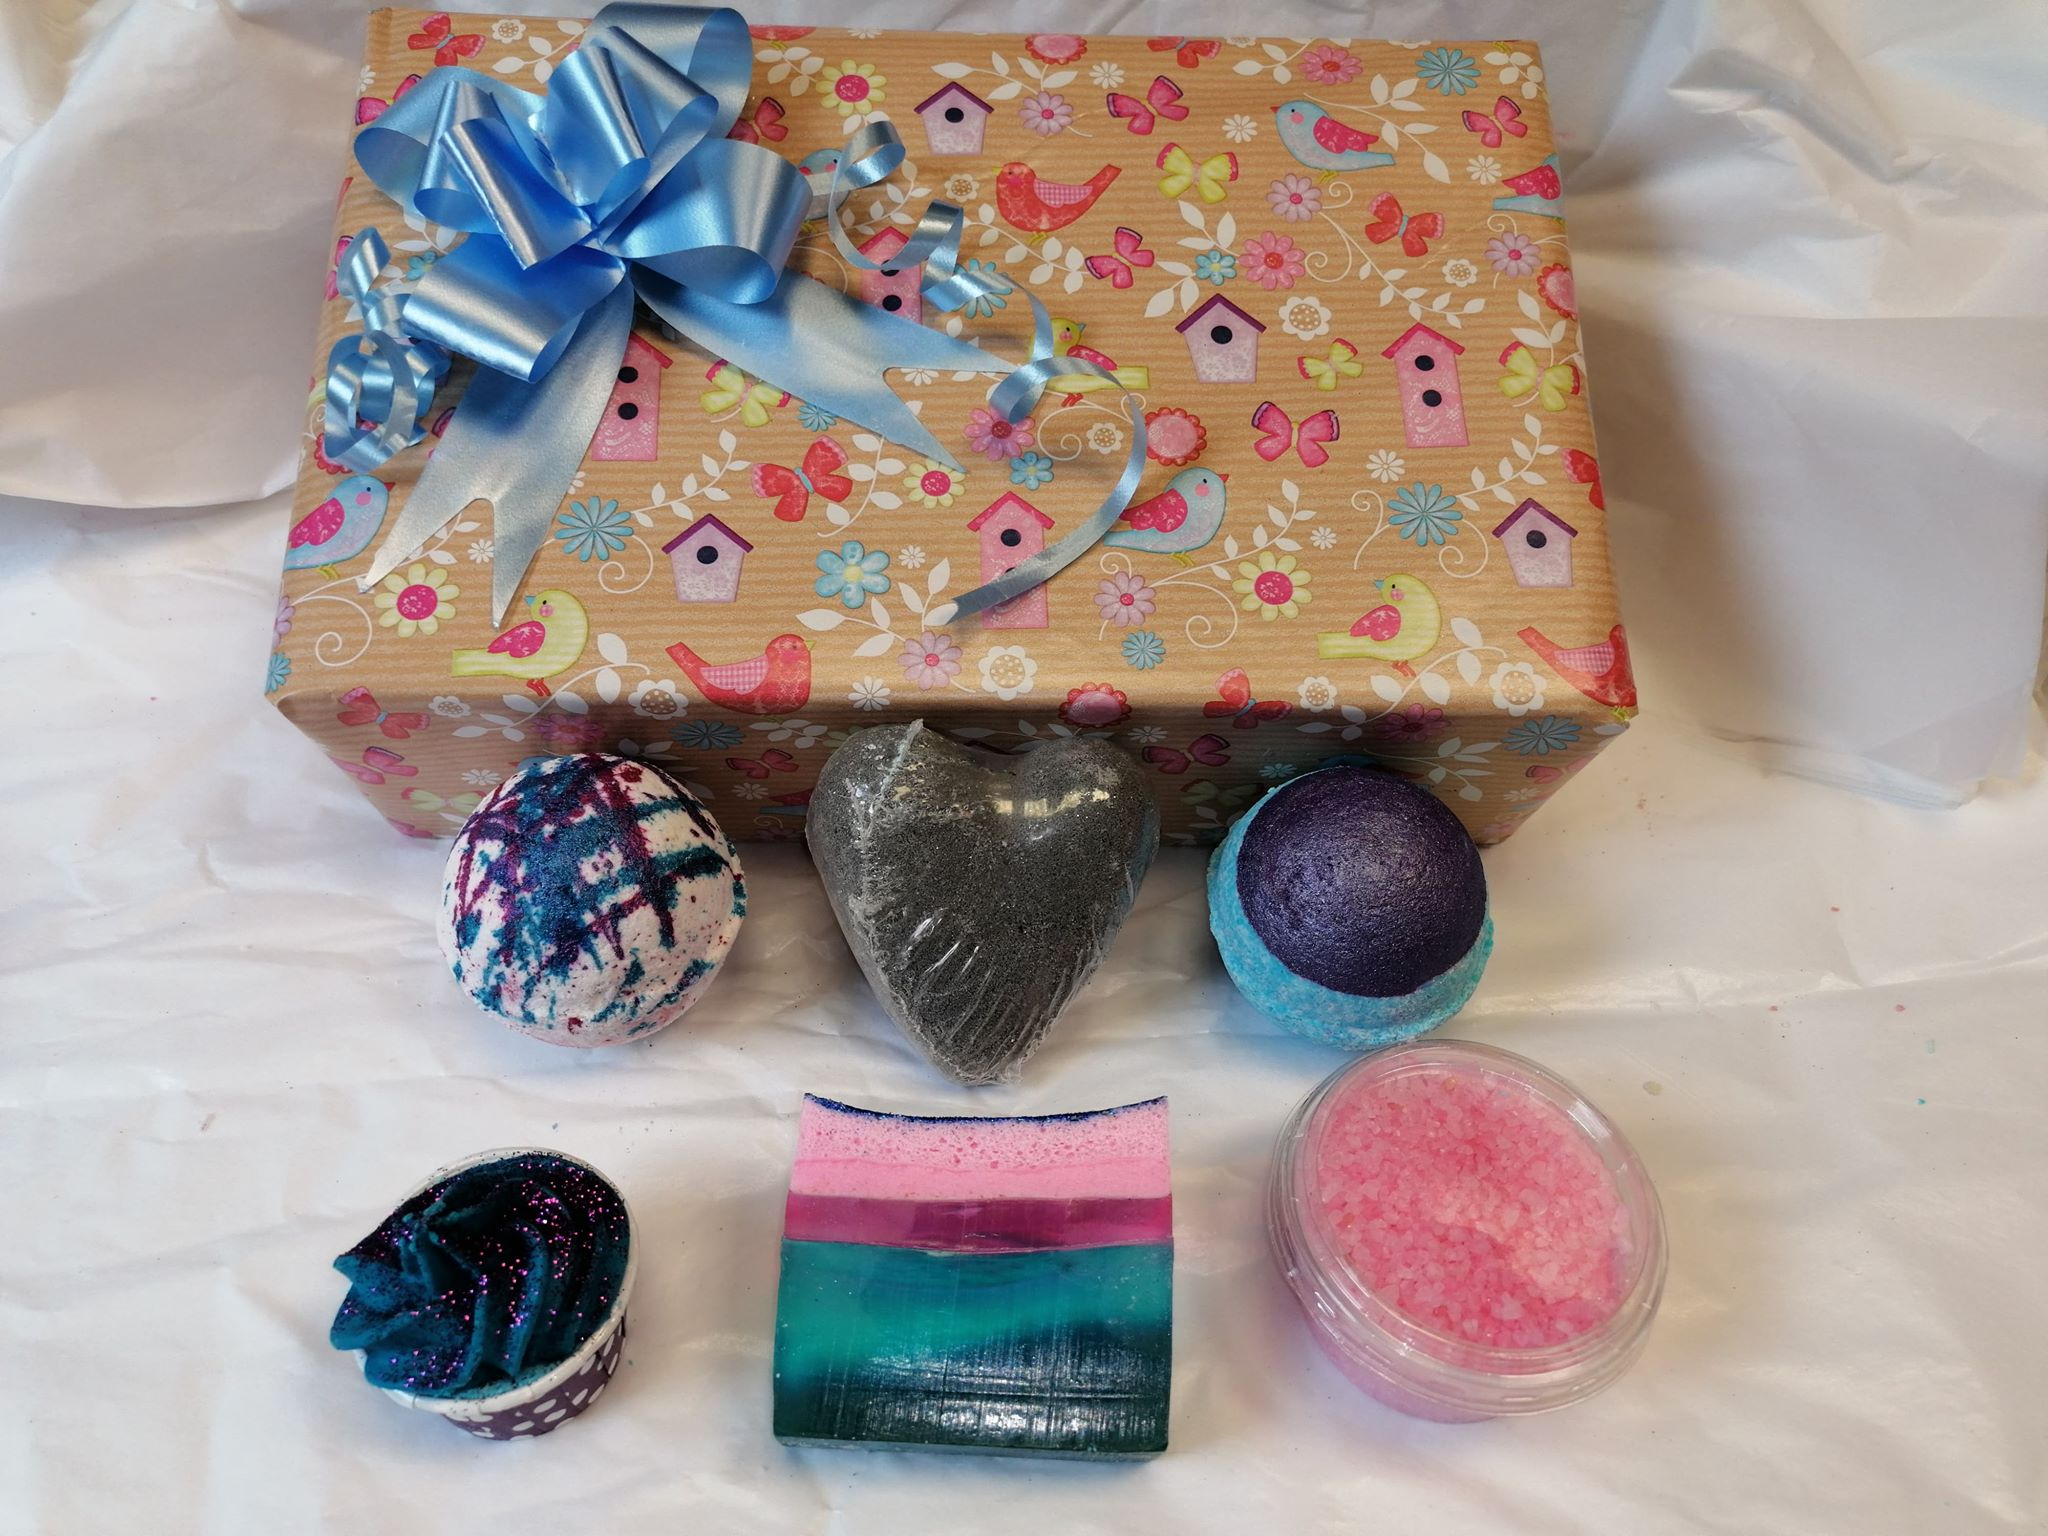 Birdie Fresh Collection Bath Bomb & Soap Gift Box